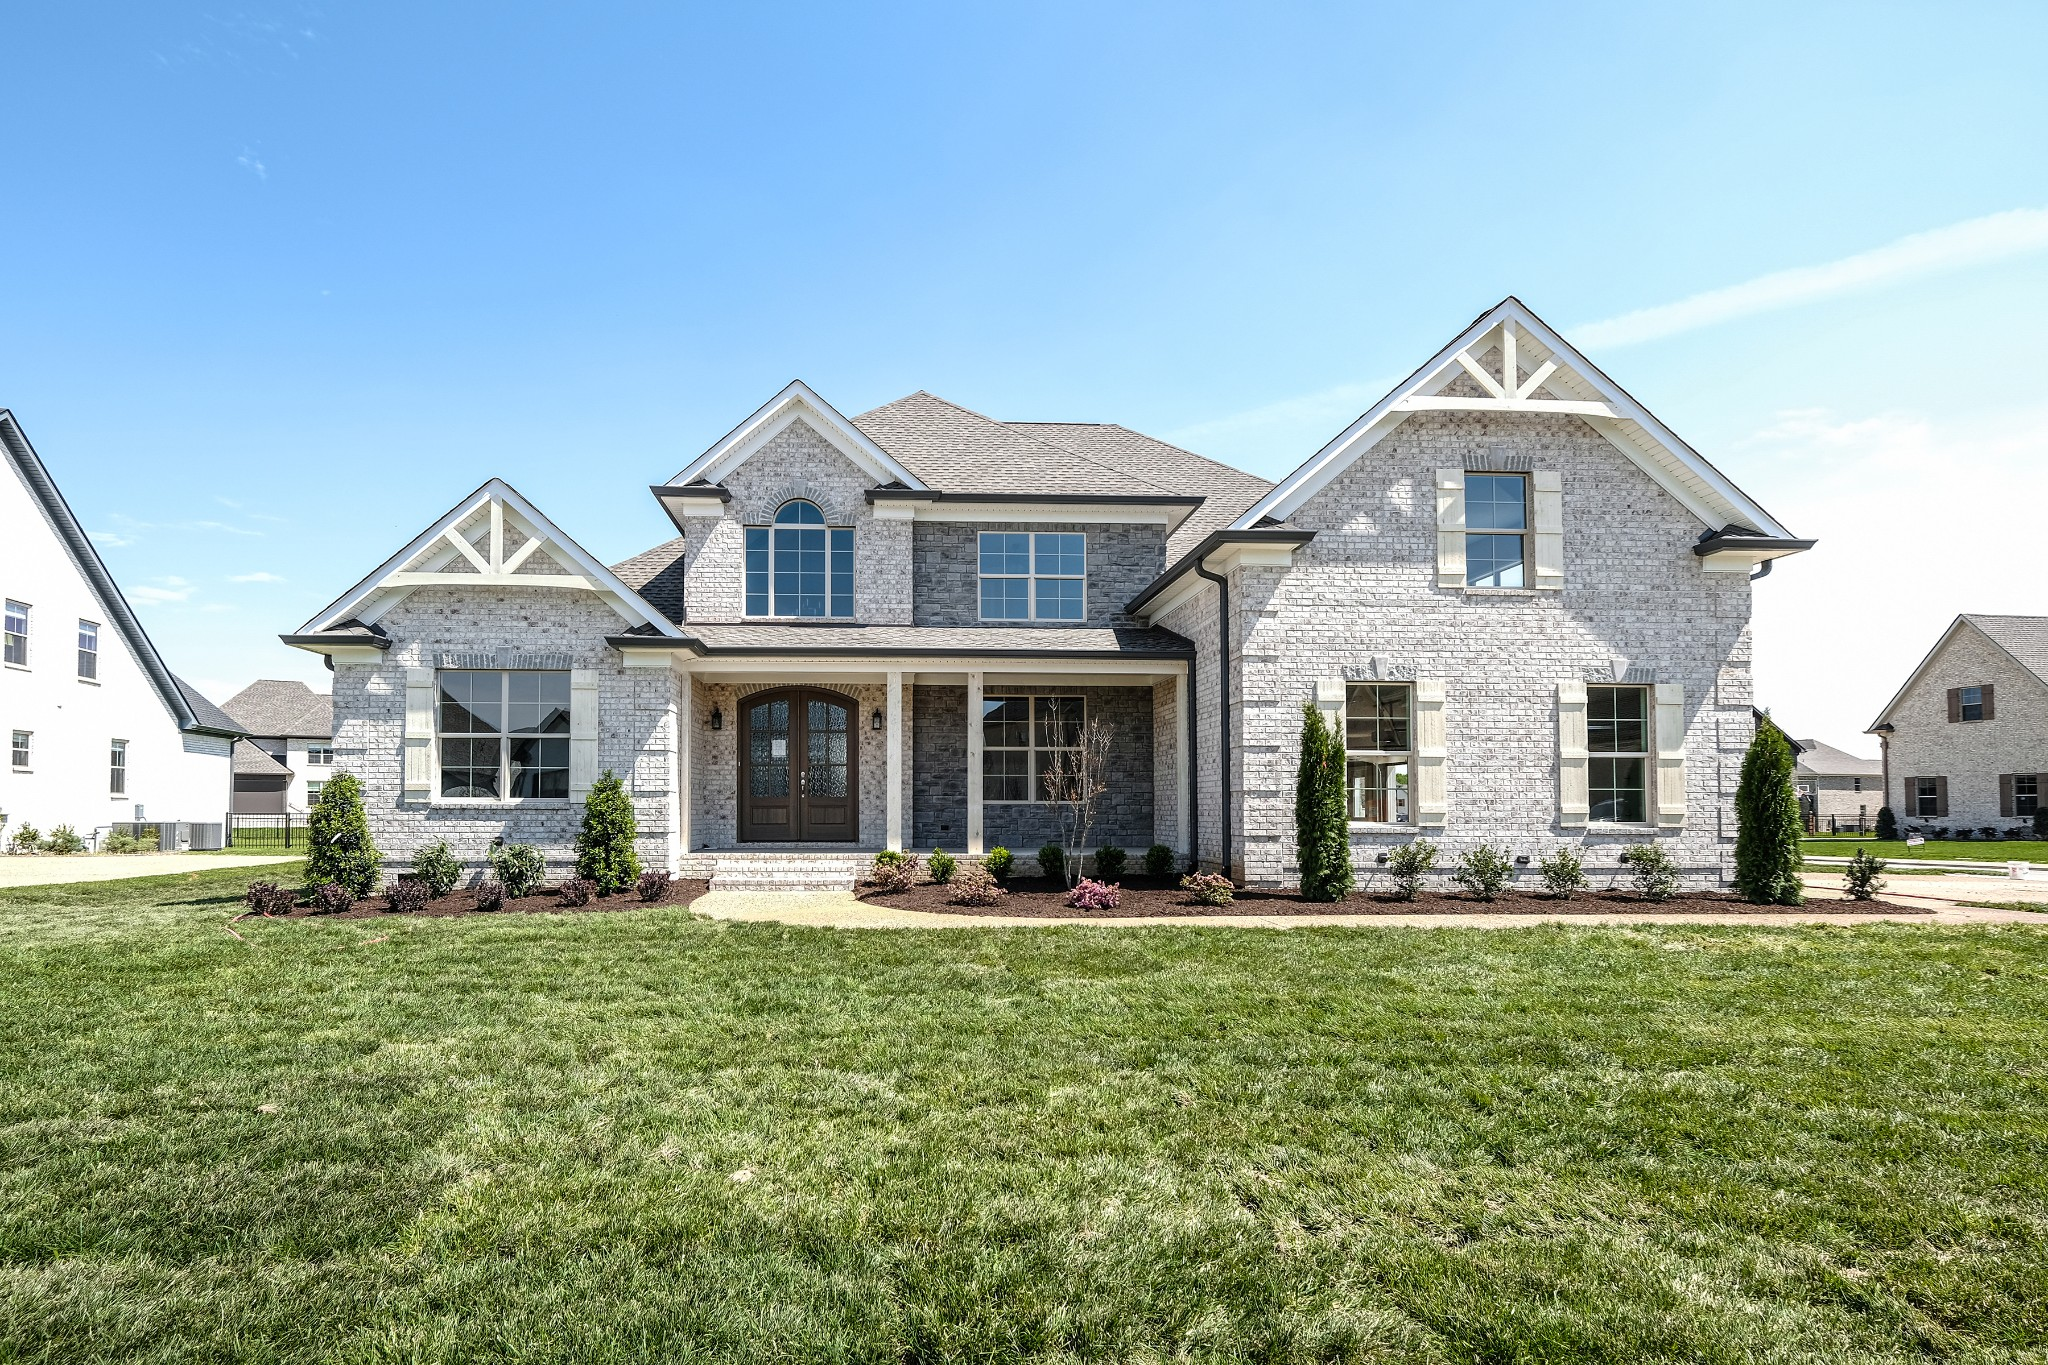 6025 Trout Ln (Lot 257), Spring Hill, TN 37174 - Spring Hill, TN real estate listing